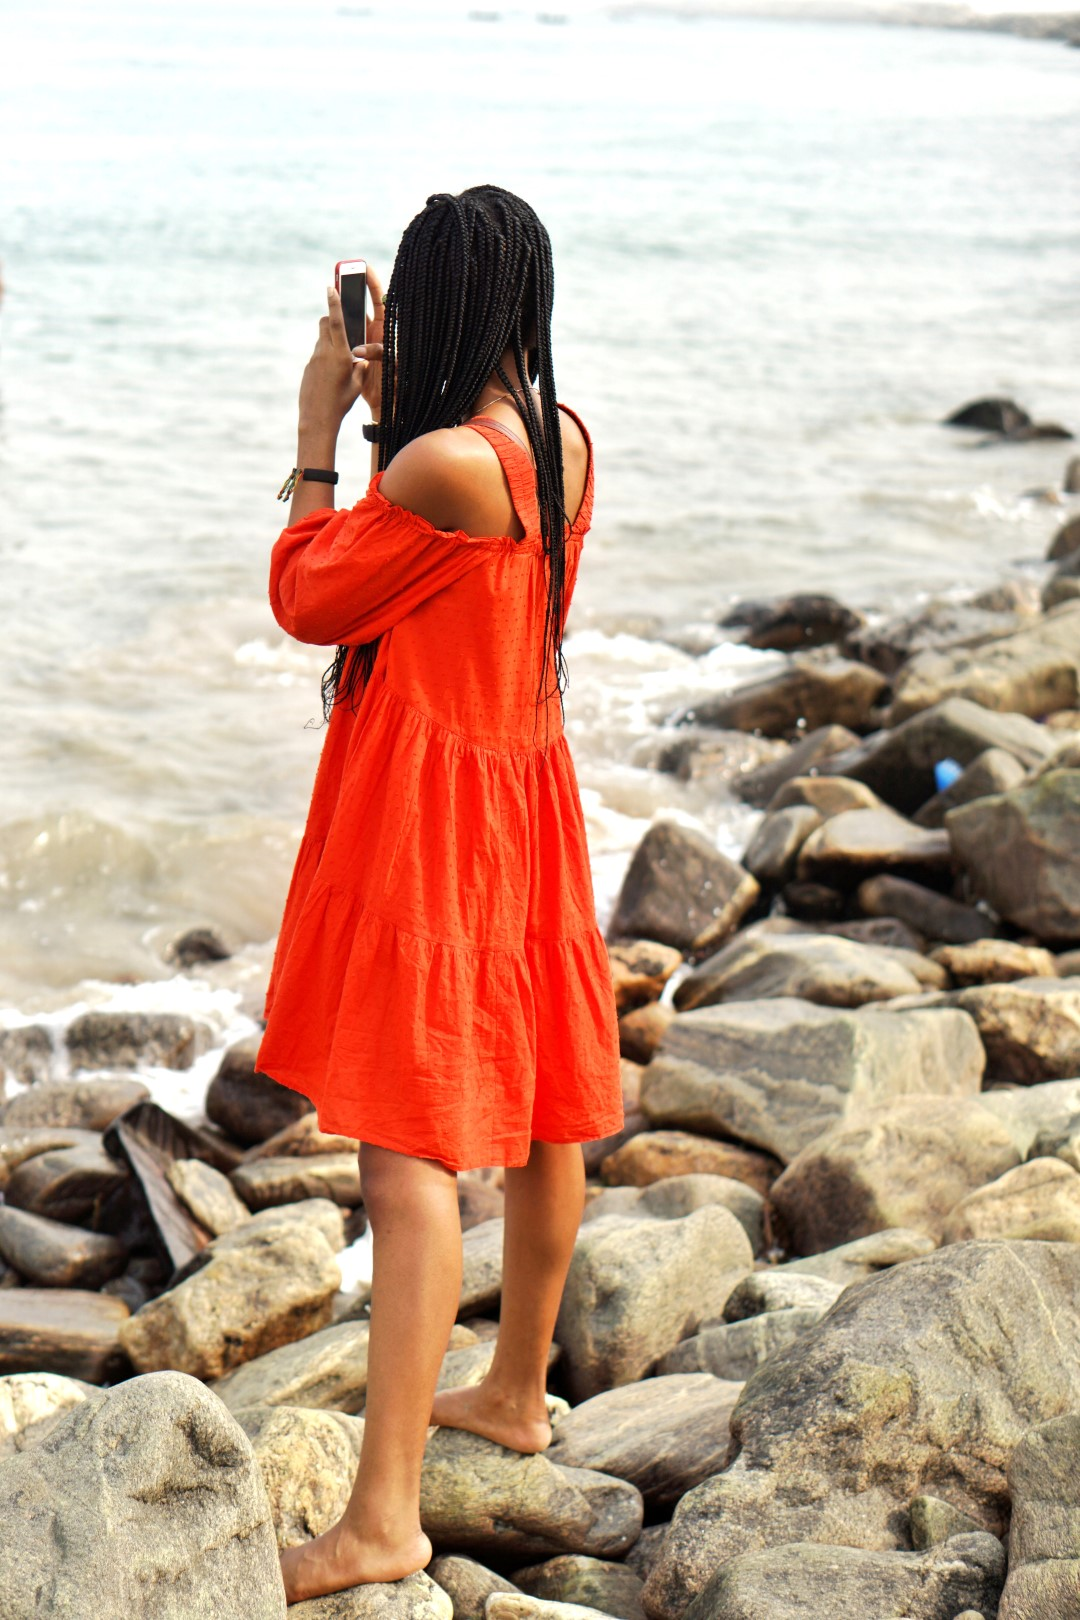 lifestyle blogger cassie daves at tarkwa bay